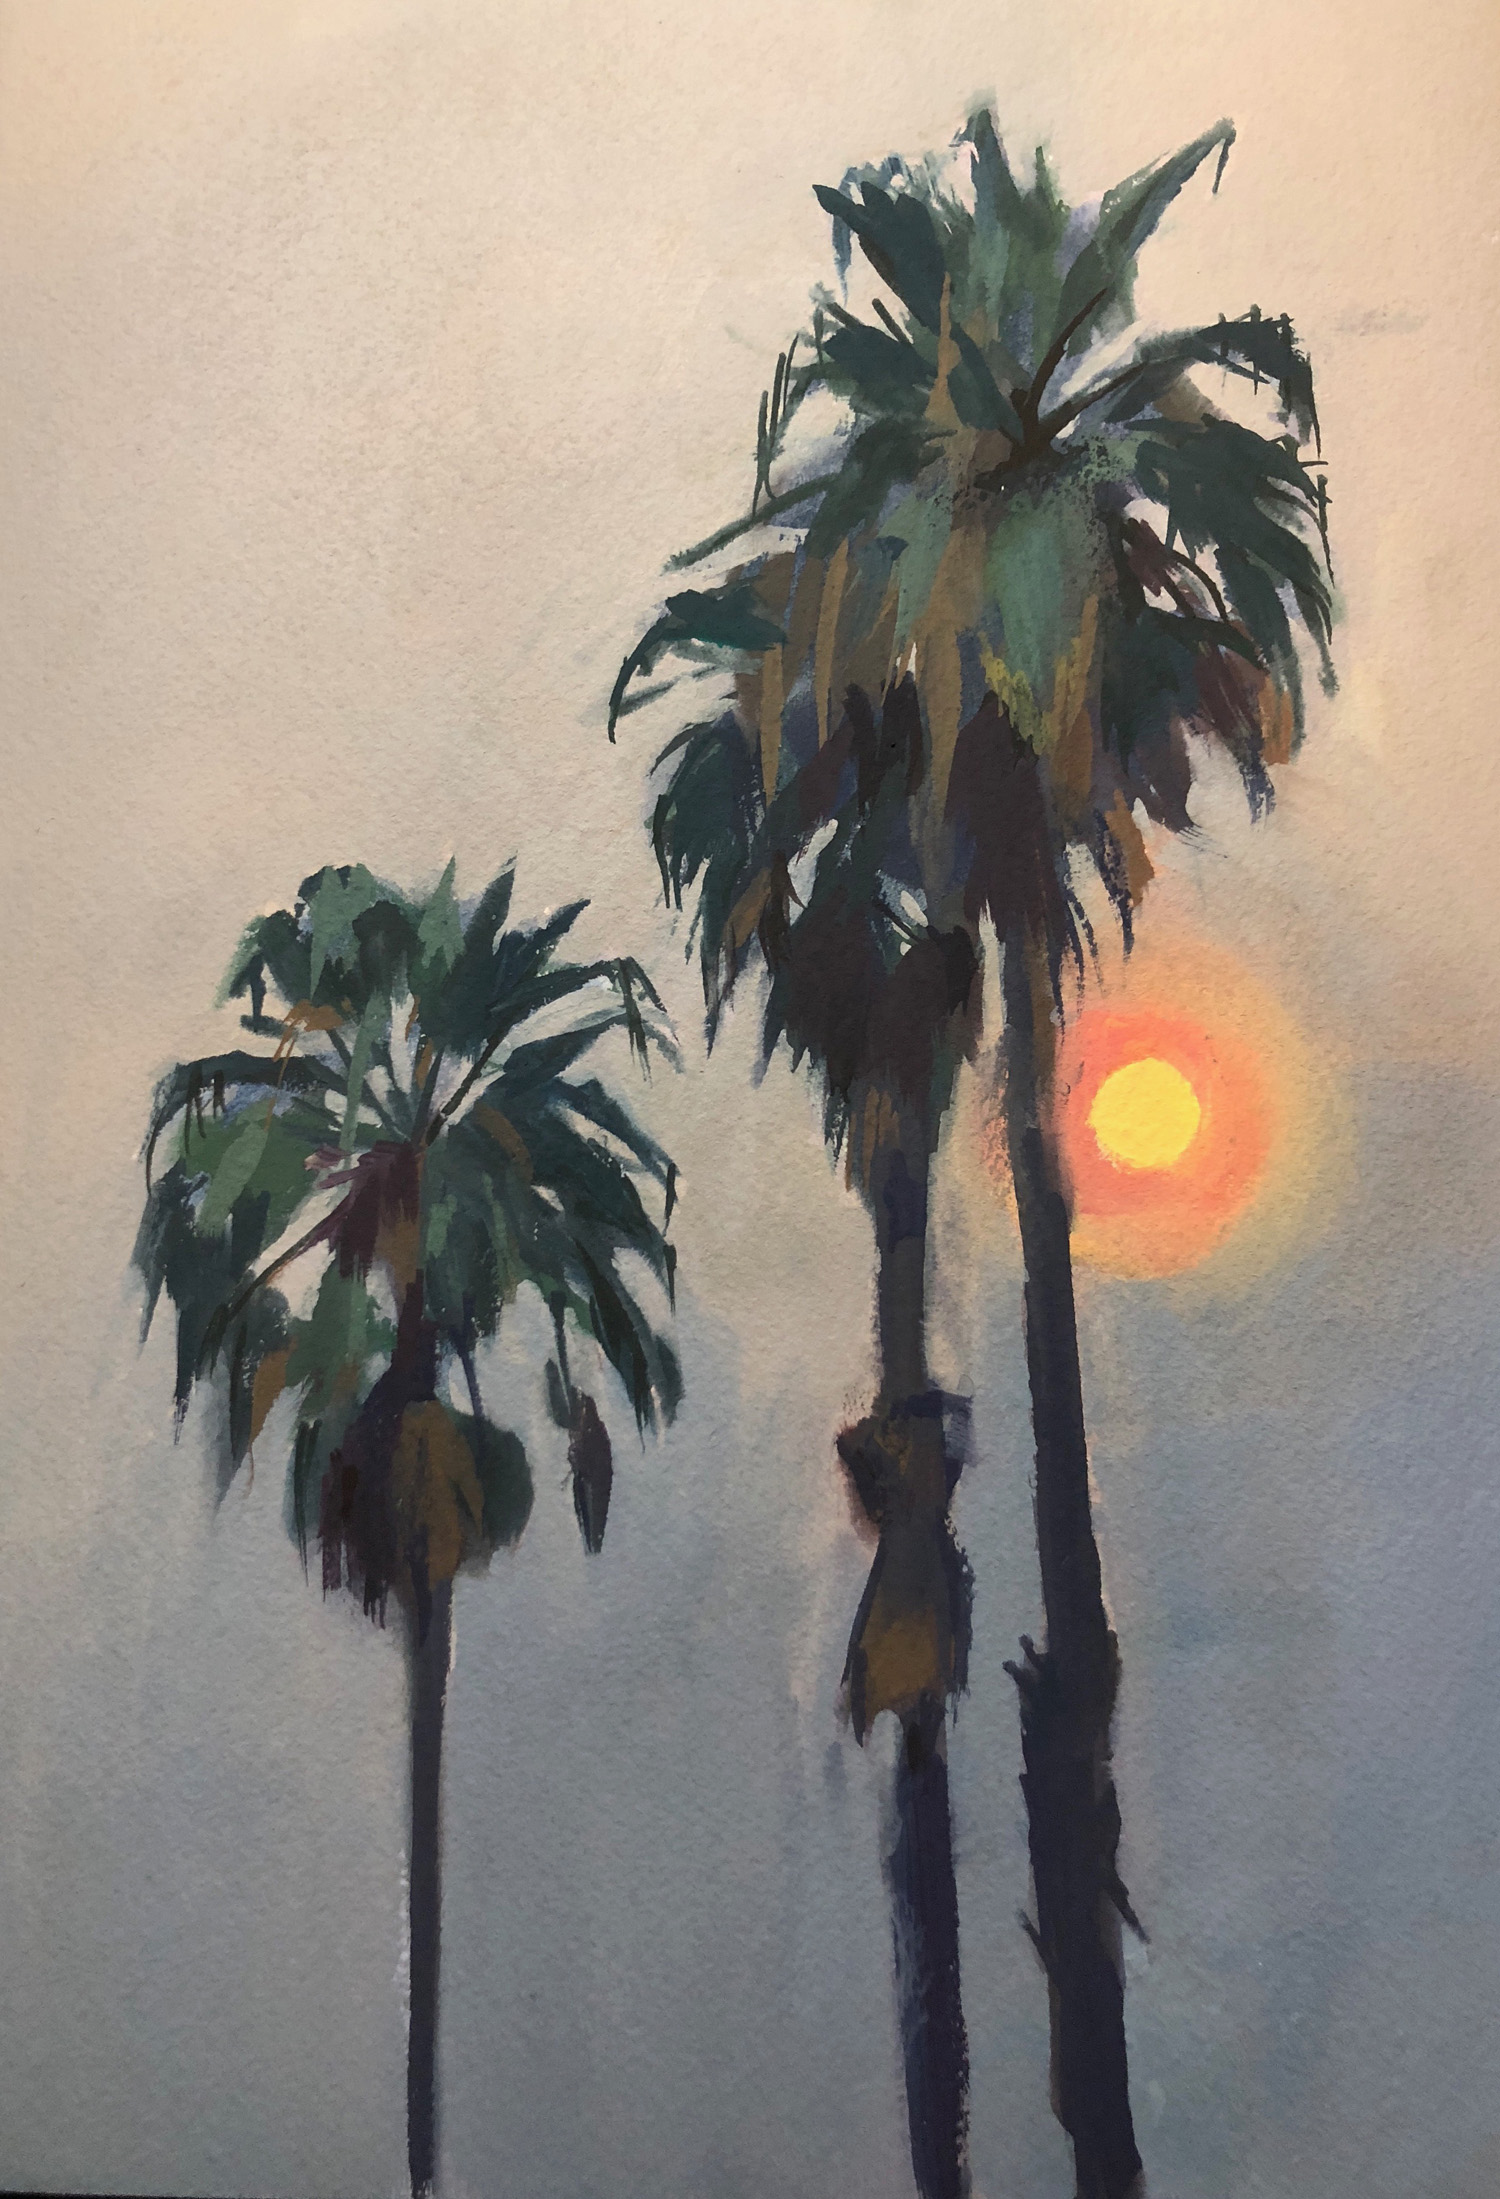 Smoky Palms